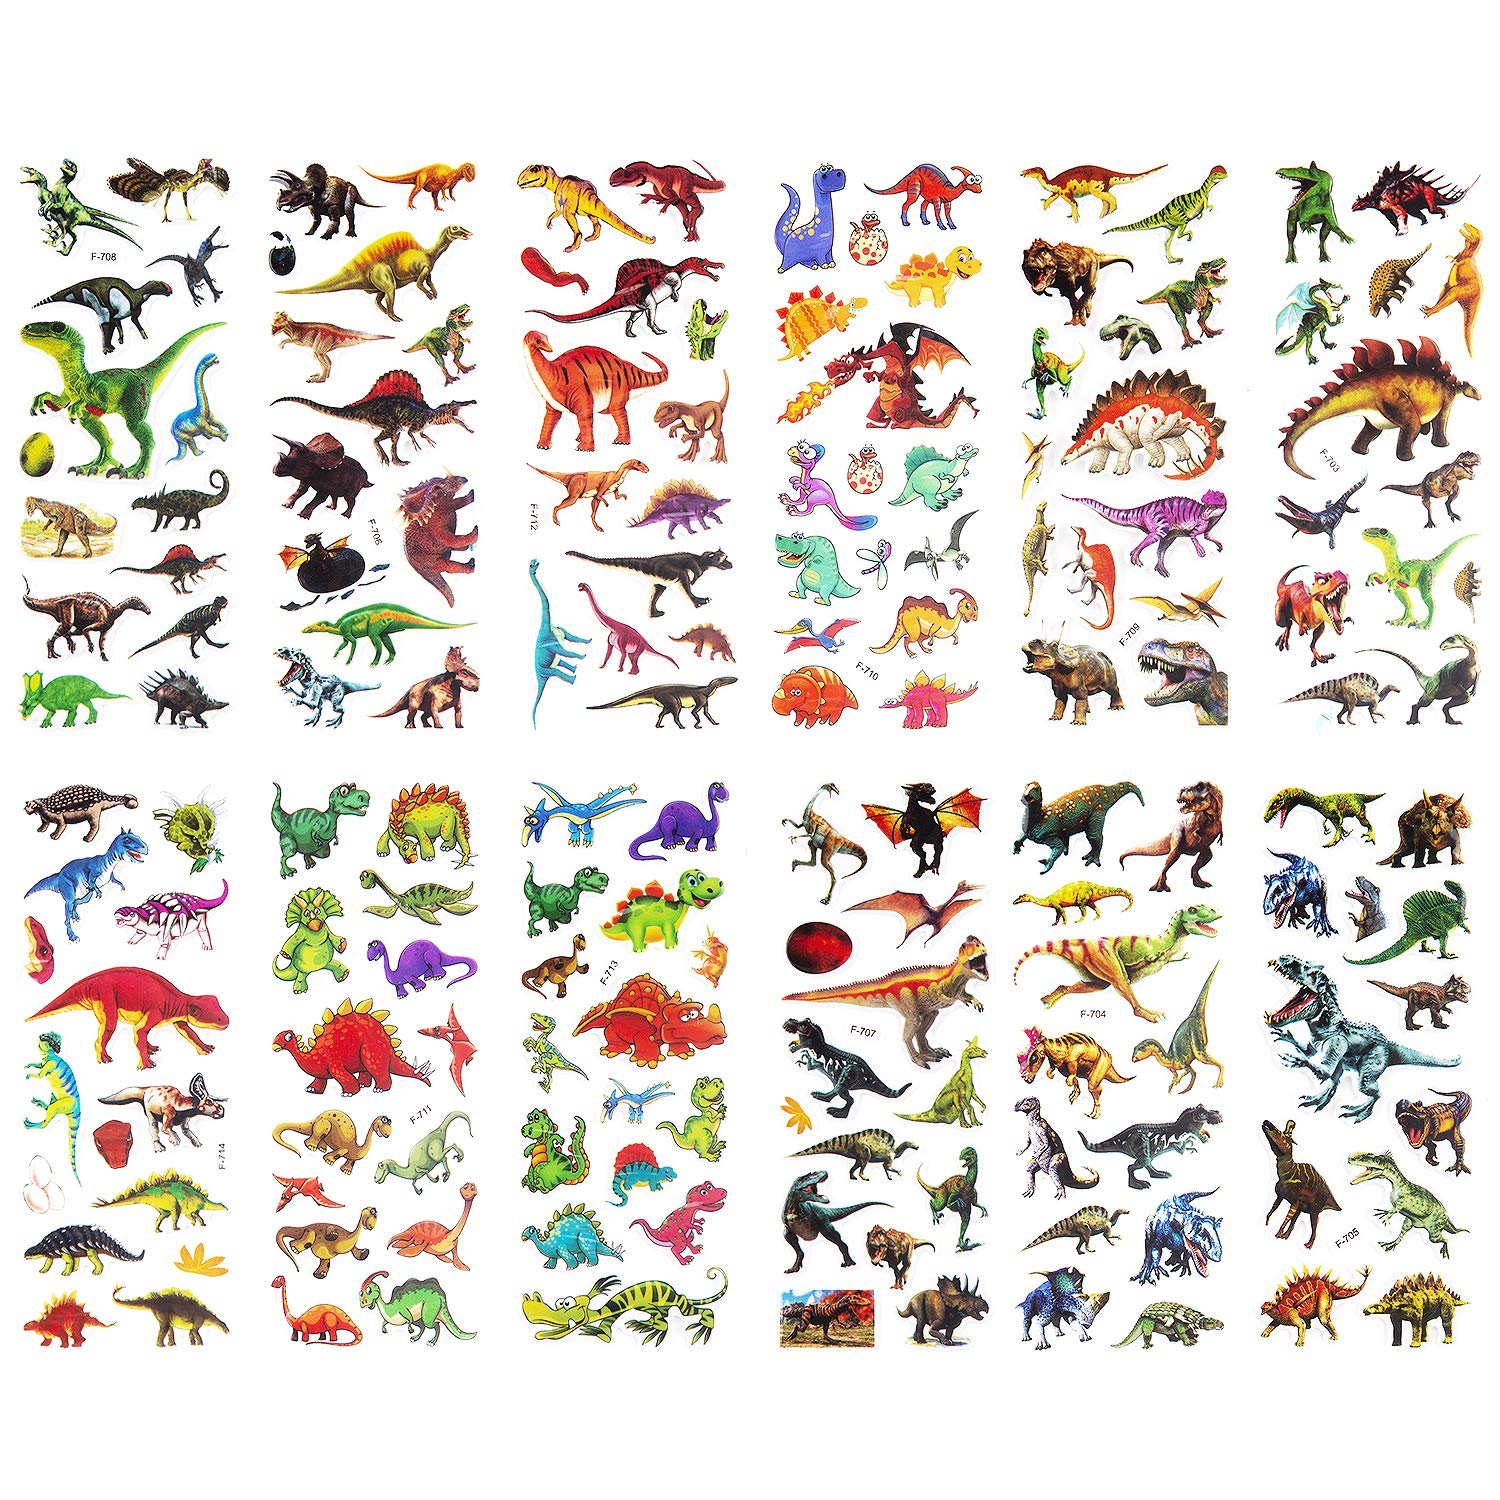 SAVITA 3D Puffy Stickers for Kids & Toddlers(300+ pcs), 24 Sheets Stickers for Reward Scrapbook Dinosaur-Themed Birthday Party Favors